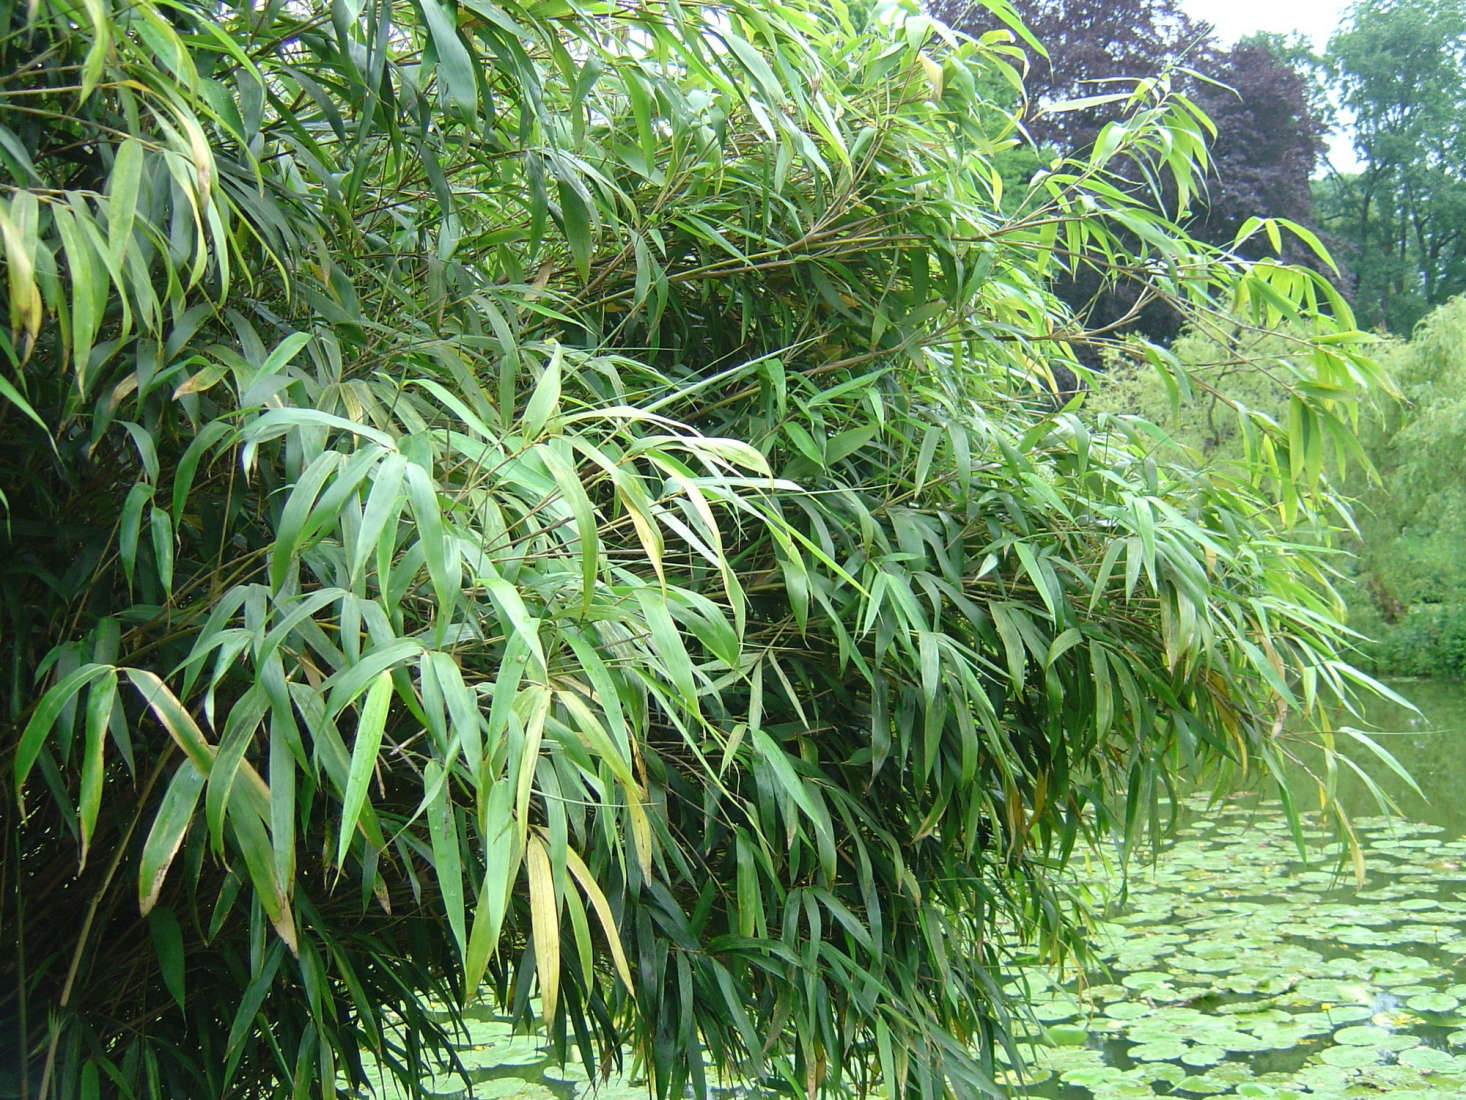 Fargesia nitida grows at the edge of a pond at a botanical garden in Münster, Germany. Photograph by Daniel J. Layton via Wikimedia.